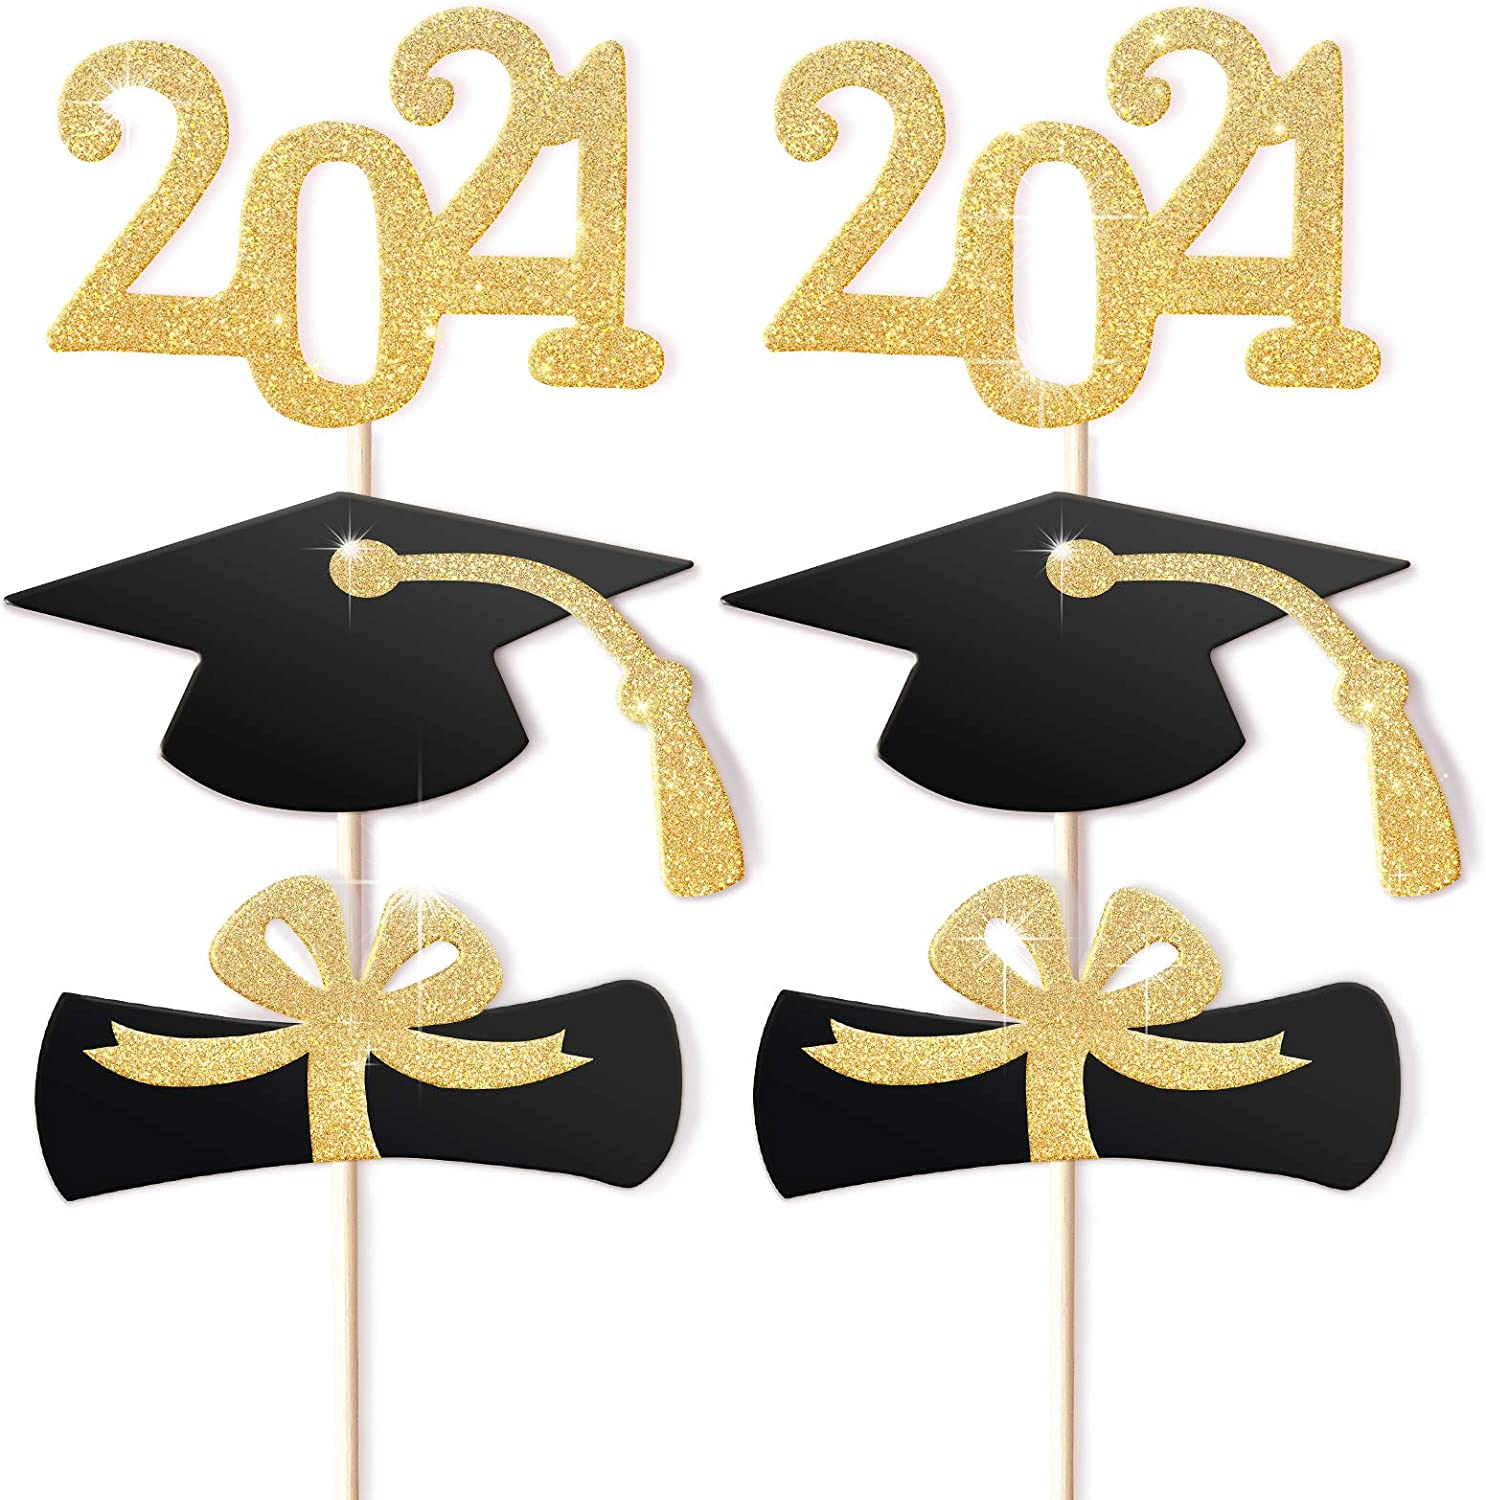 Dmaxia 2021 Graduation Cupcake Toppers,Food Appetizer Picks For Graduate Party Mini Cake Decorations Diploma 2021 Grad Cap Pack of 48